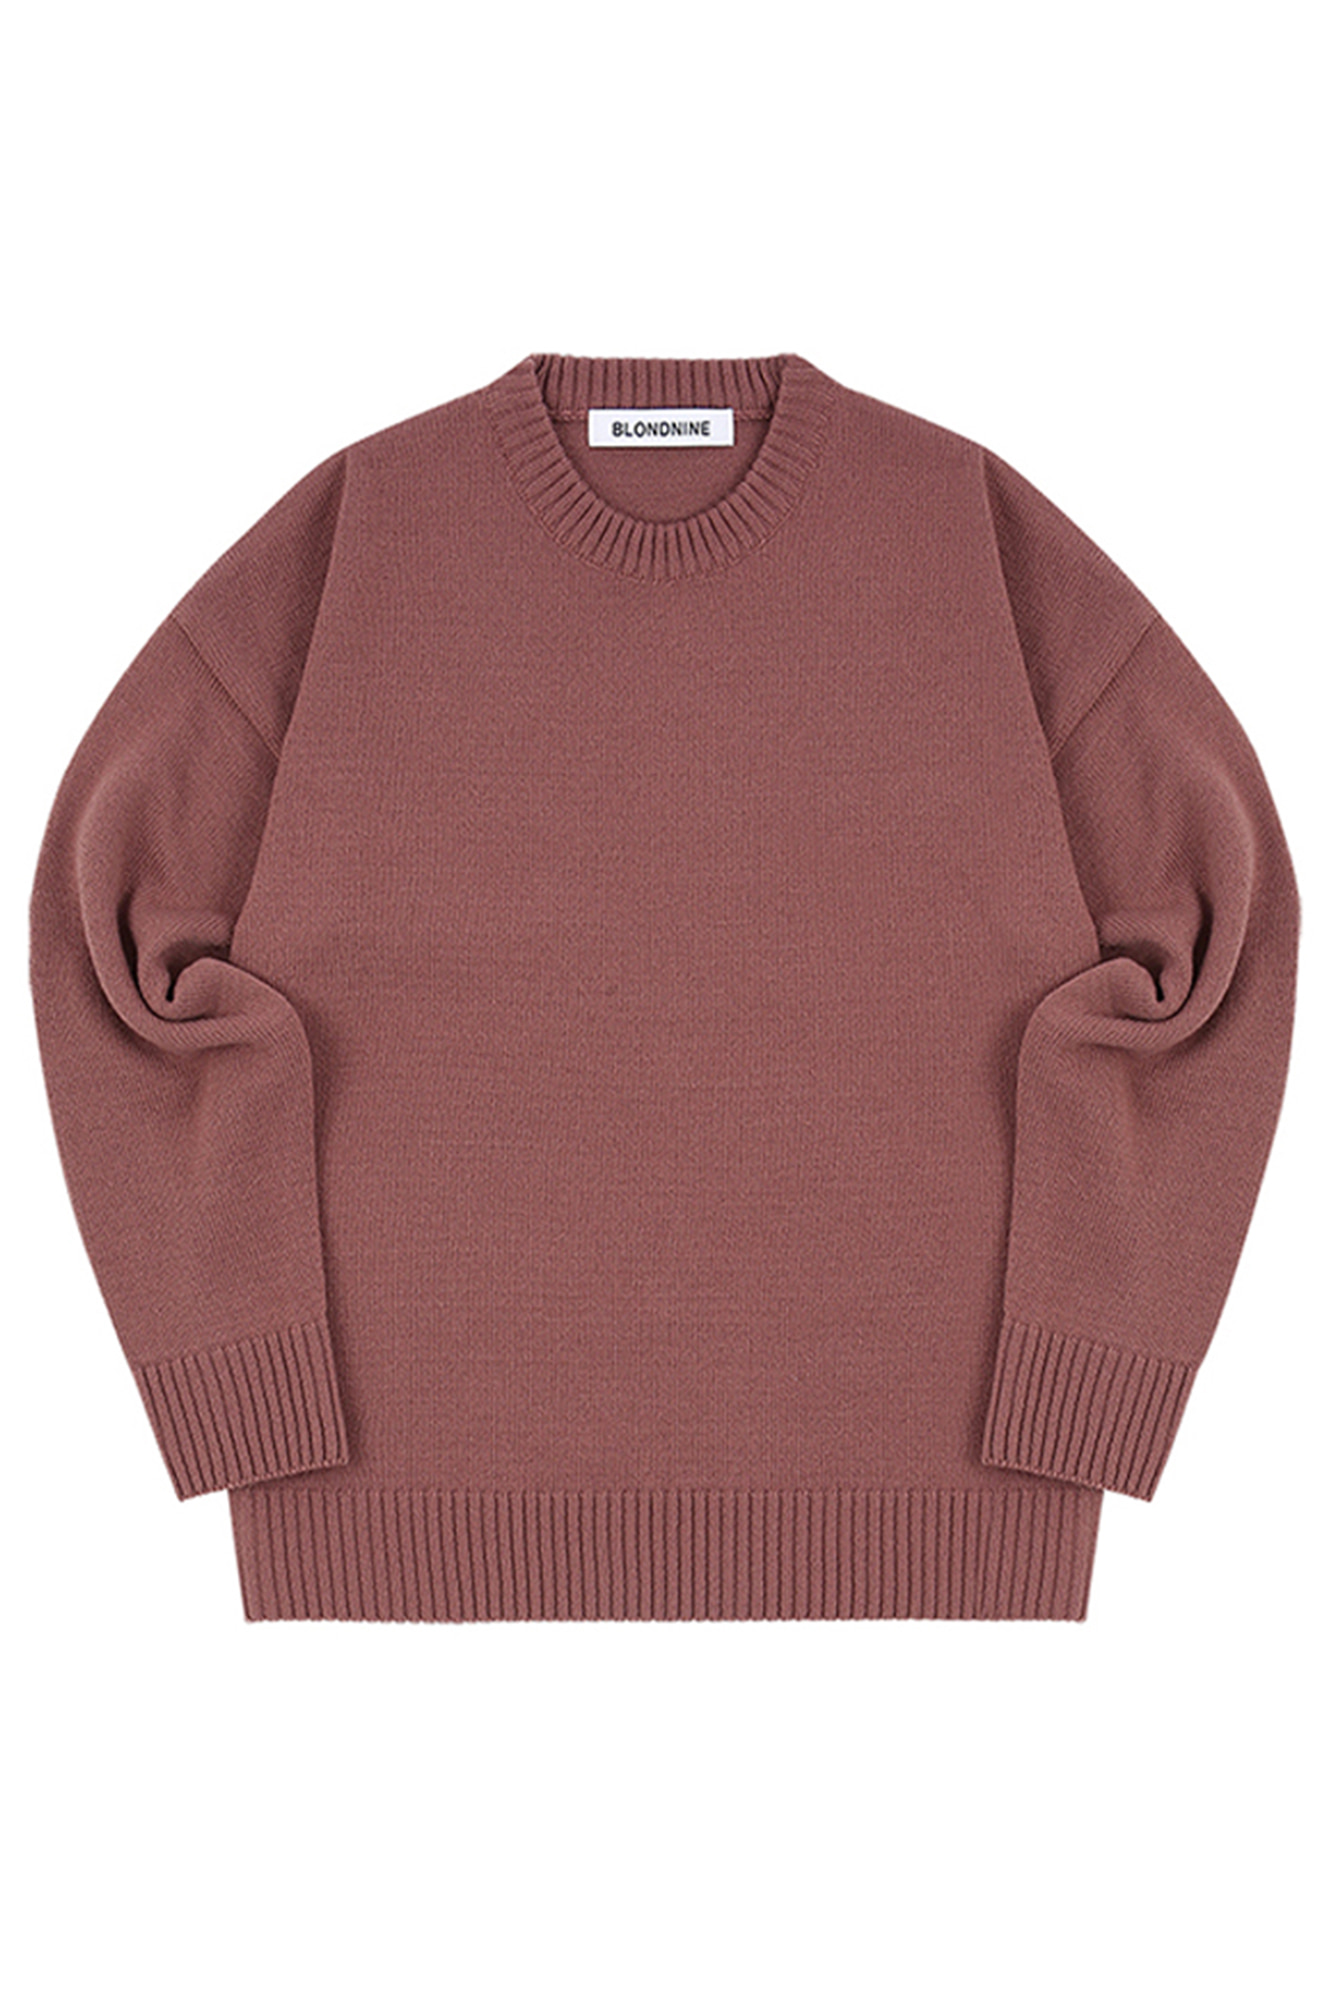 ROUND KNIT SWEATER